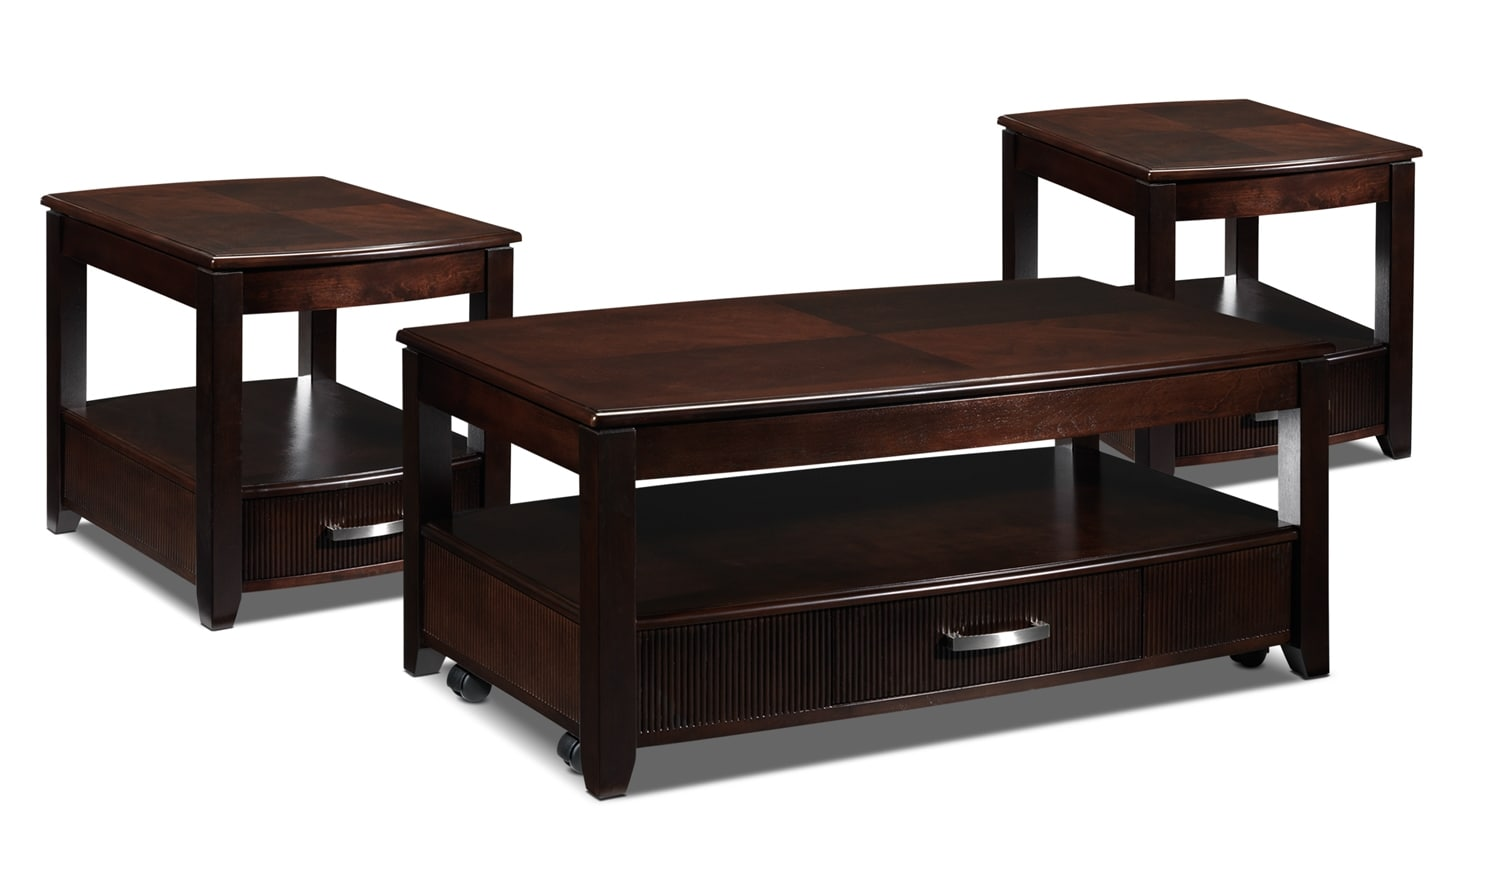 Joanna 3 Pc. Table Set - Espresso